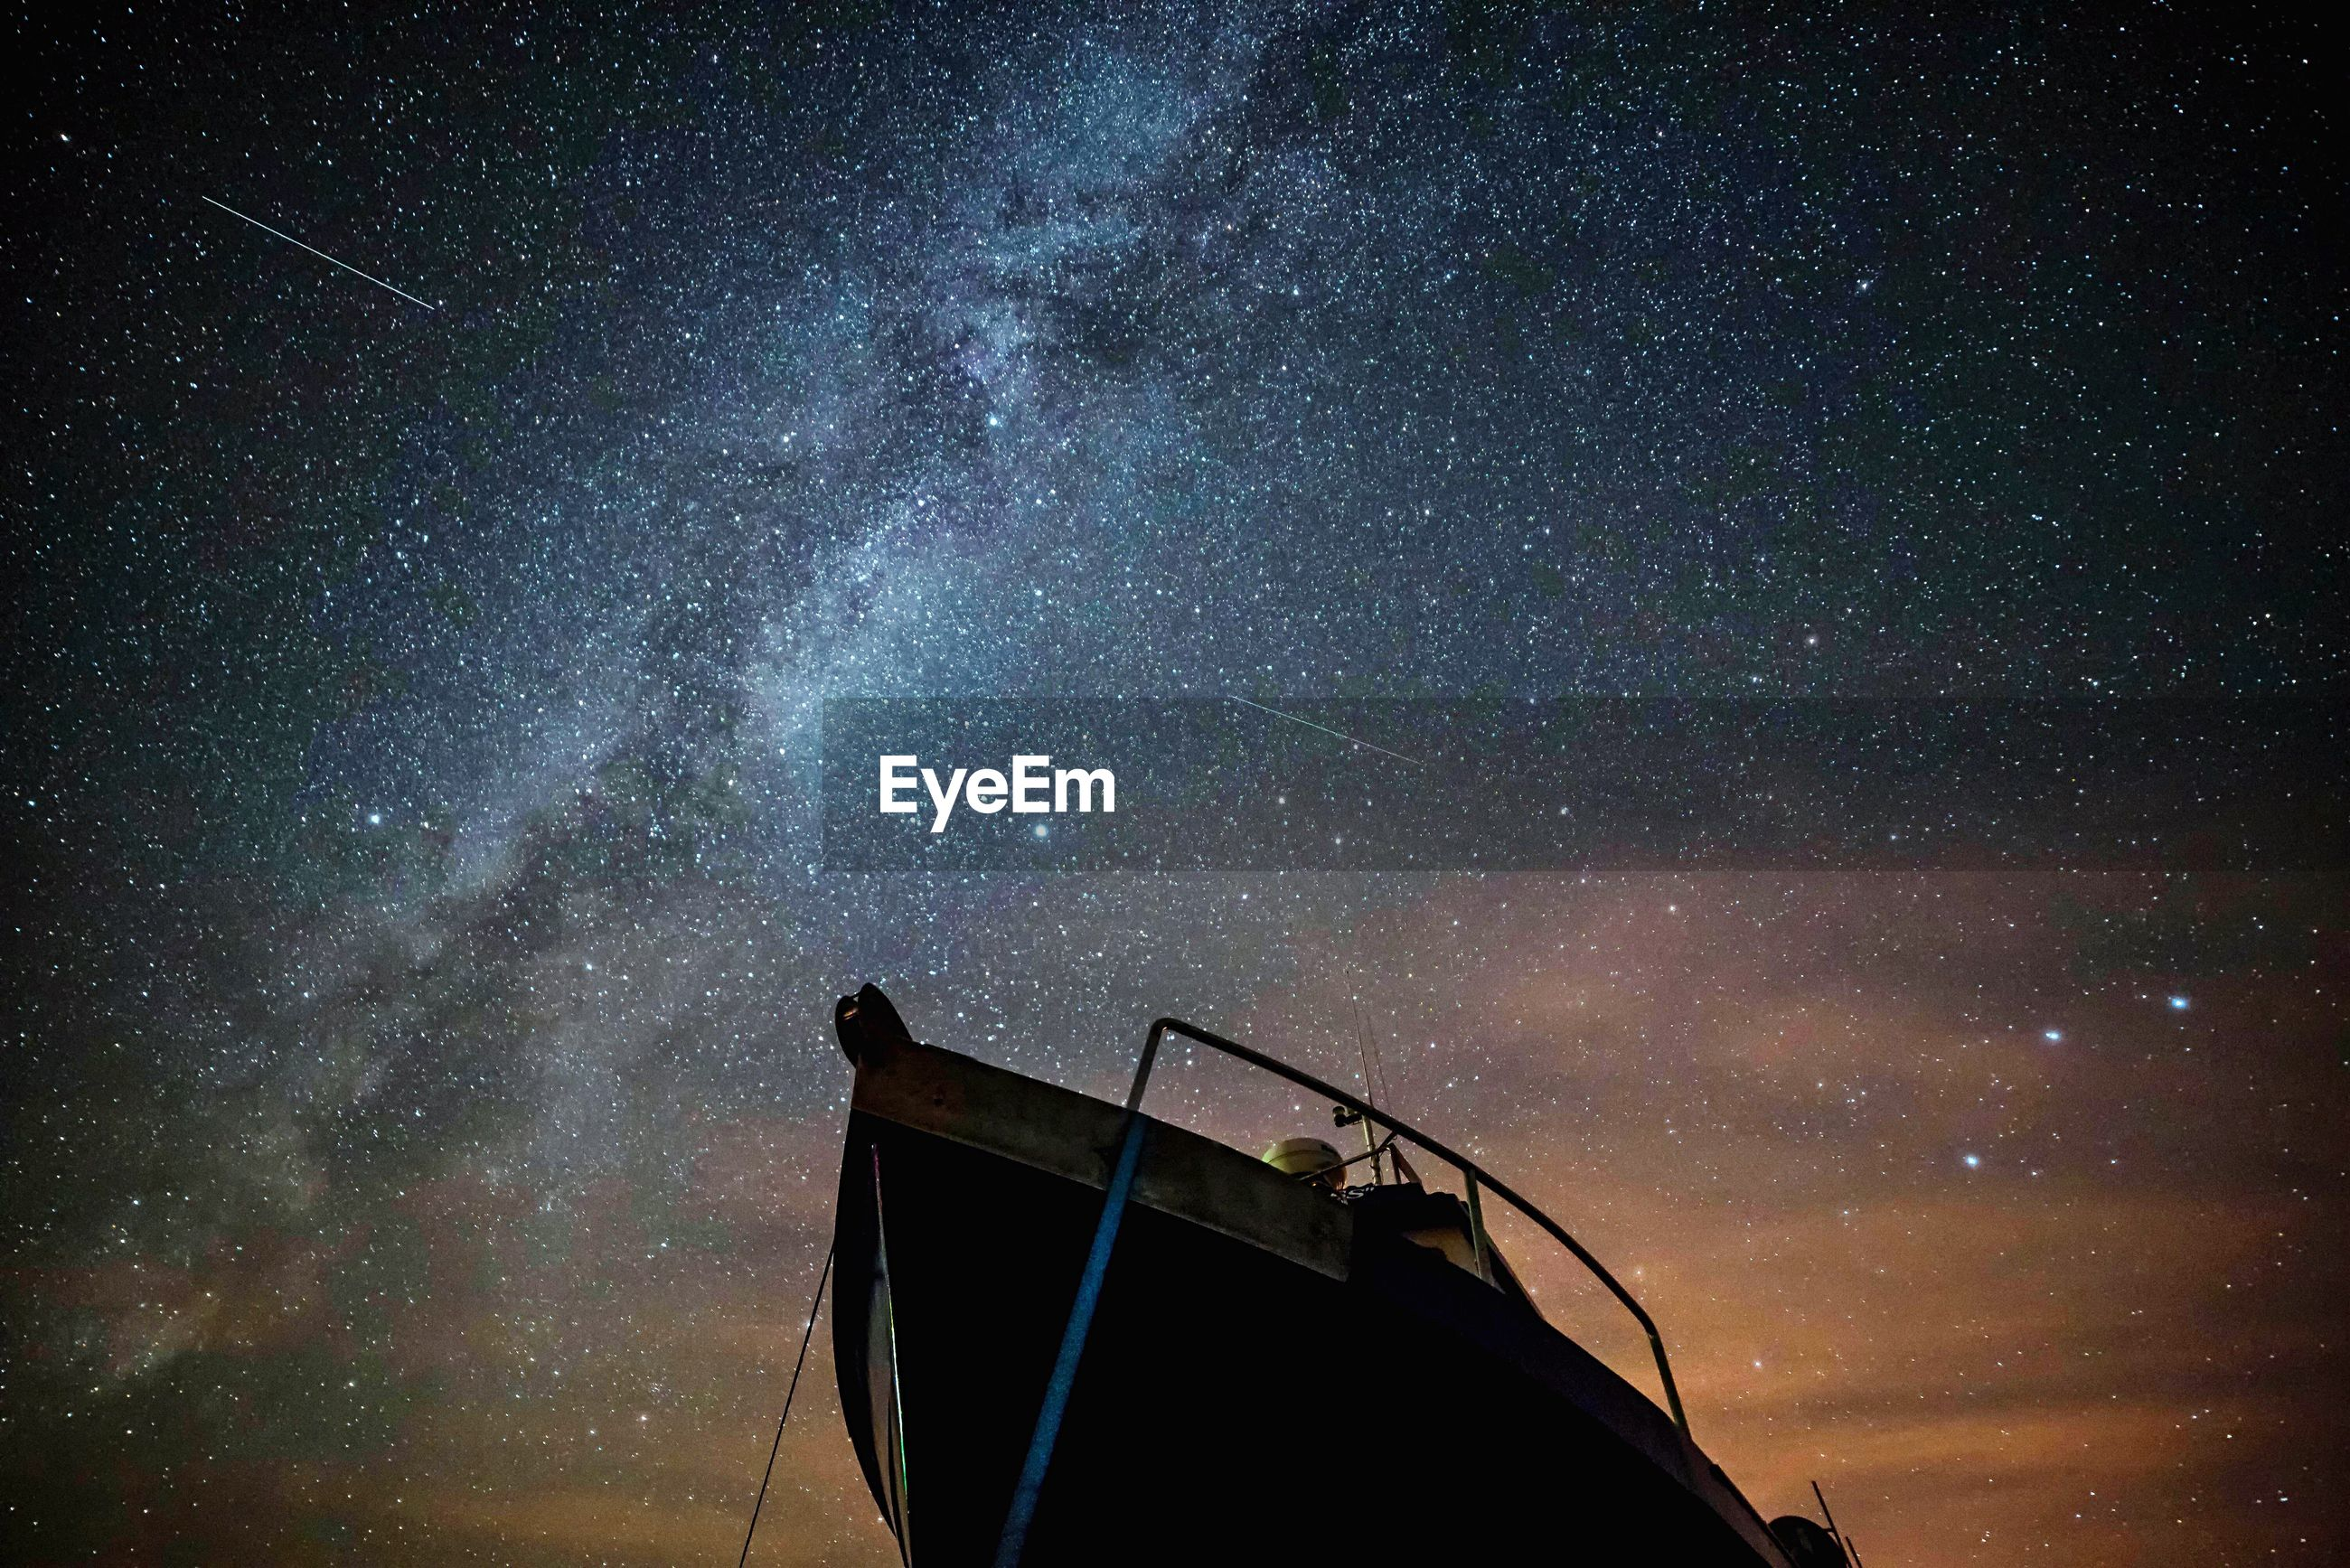 Low angle view of boat against starry sky at night